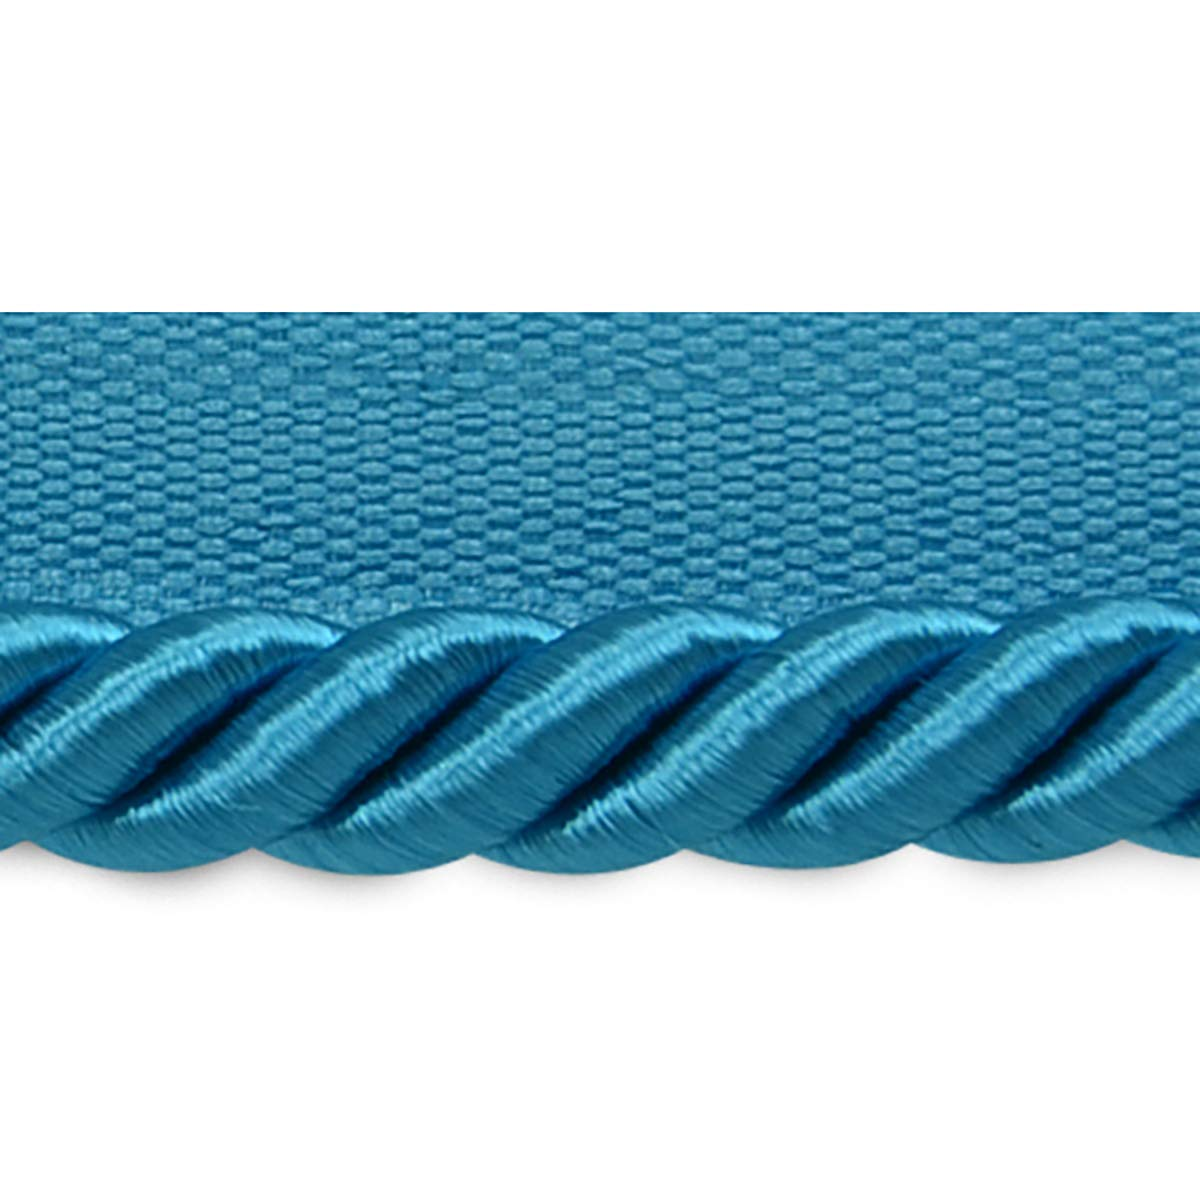 Hilda 3/8in Twisted Lip Cord Trim Turquoise (Precut 20 Yard) by Expo International Inc.